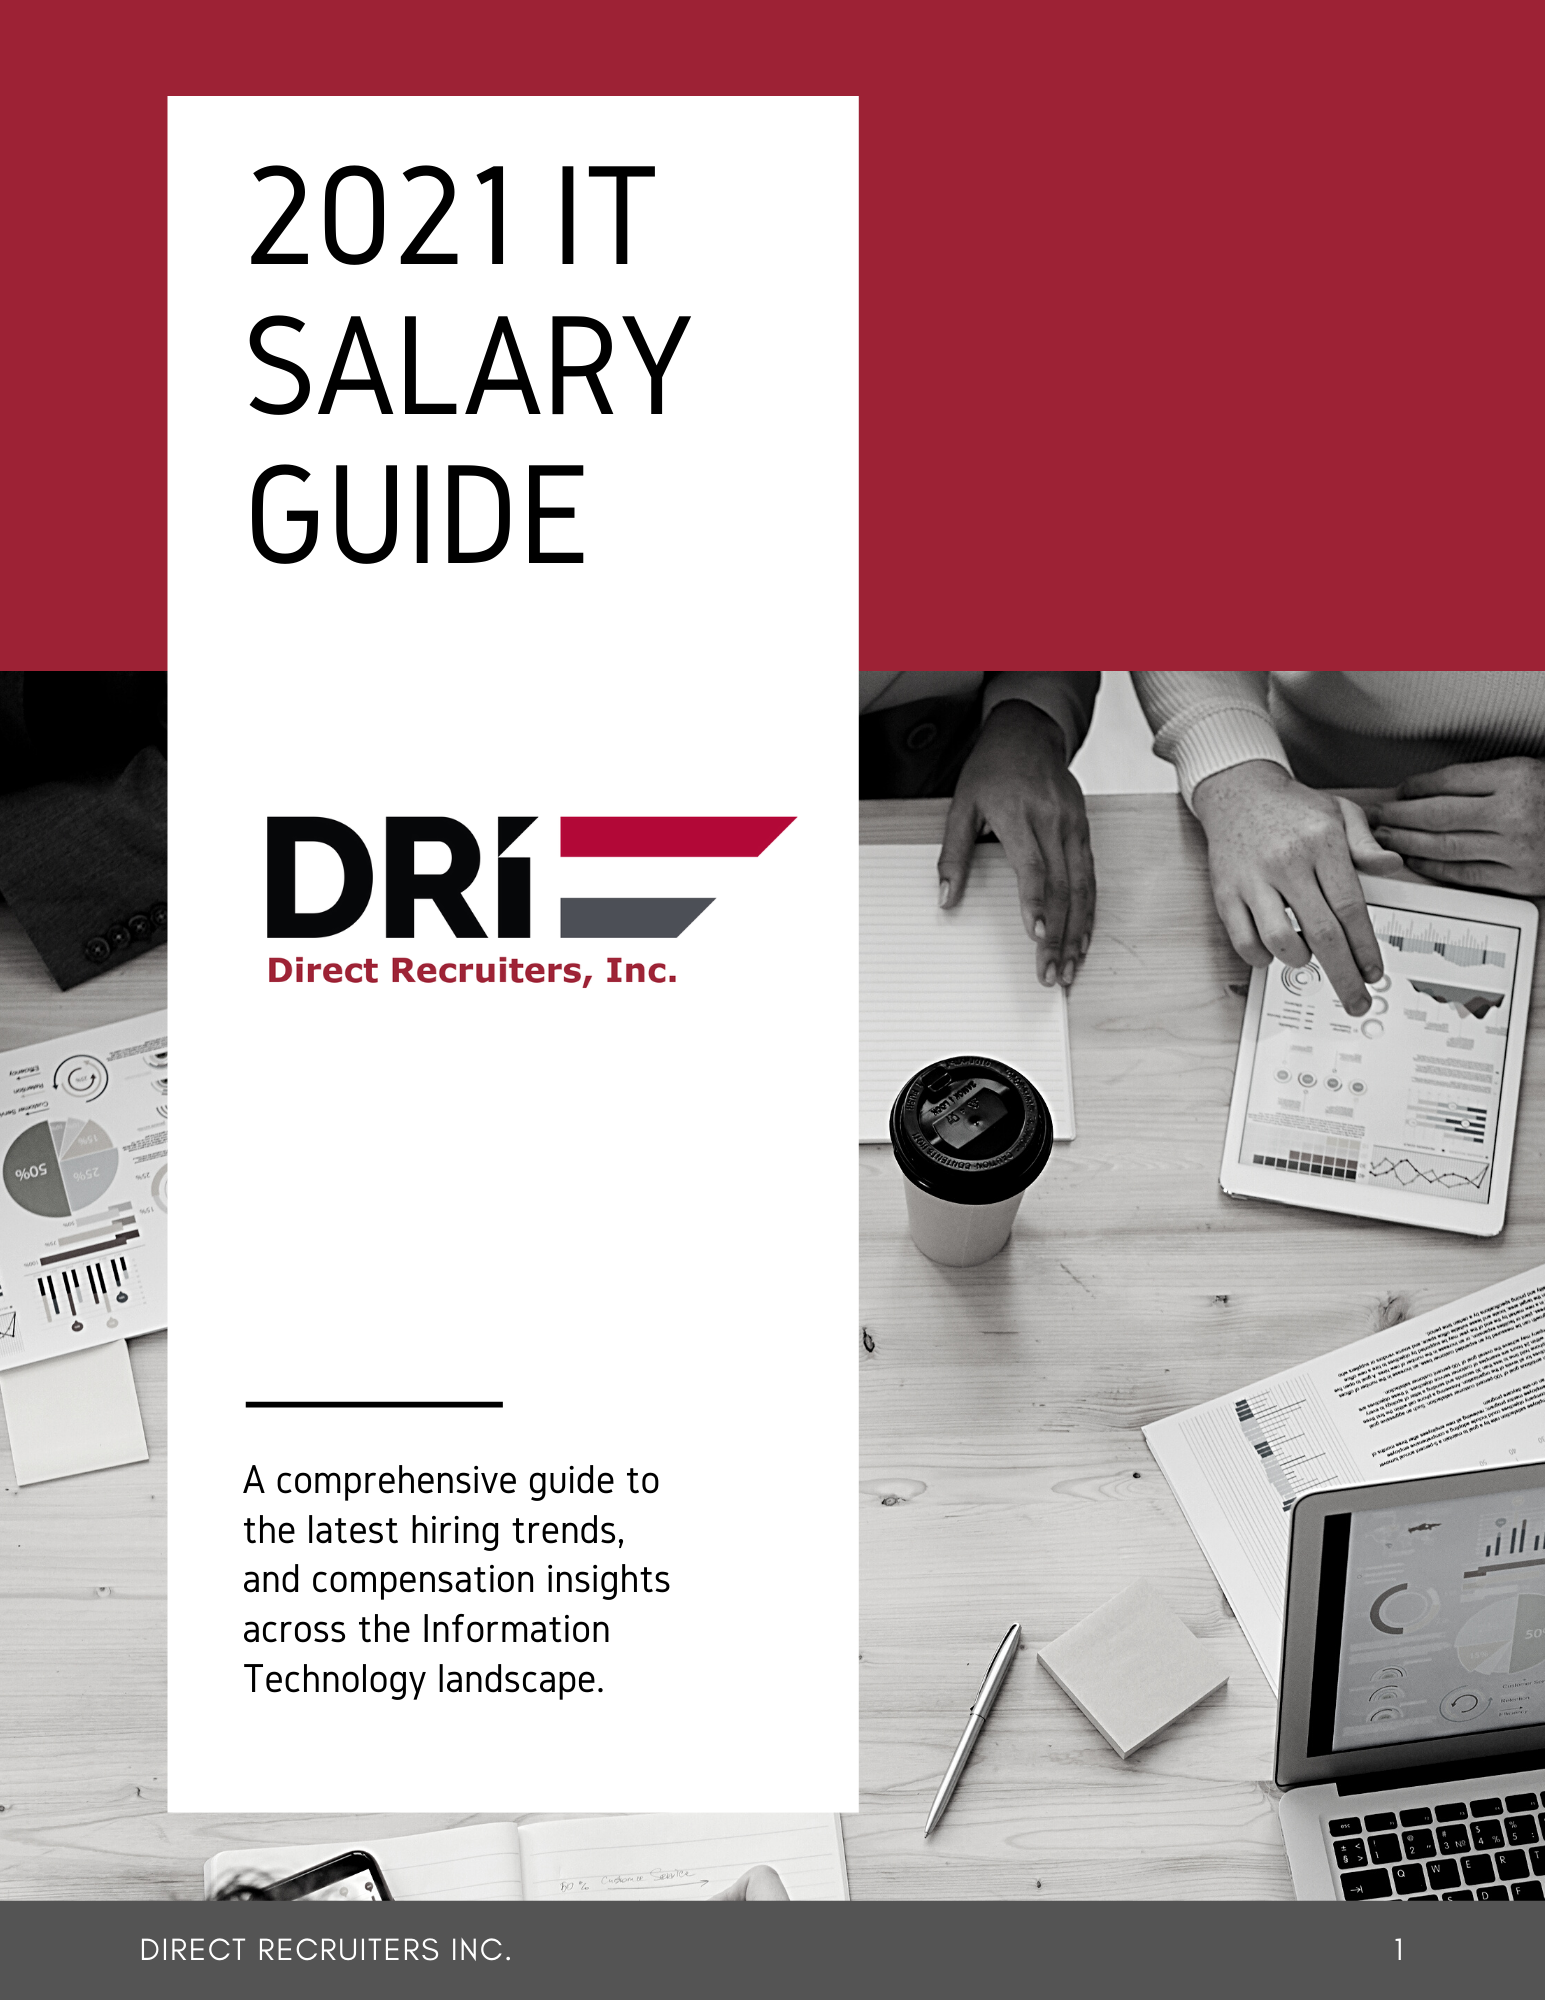 Direct Recruiters 2021 IT Salary Guide